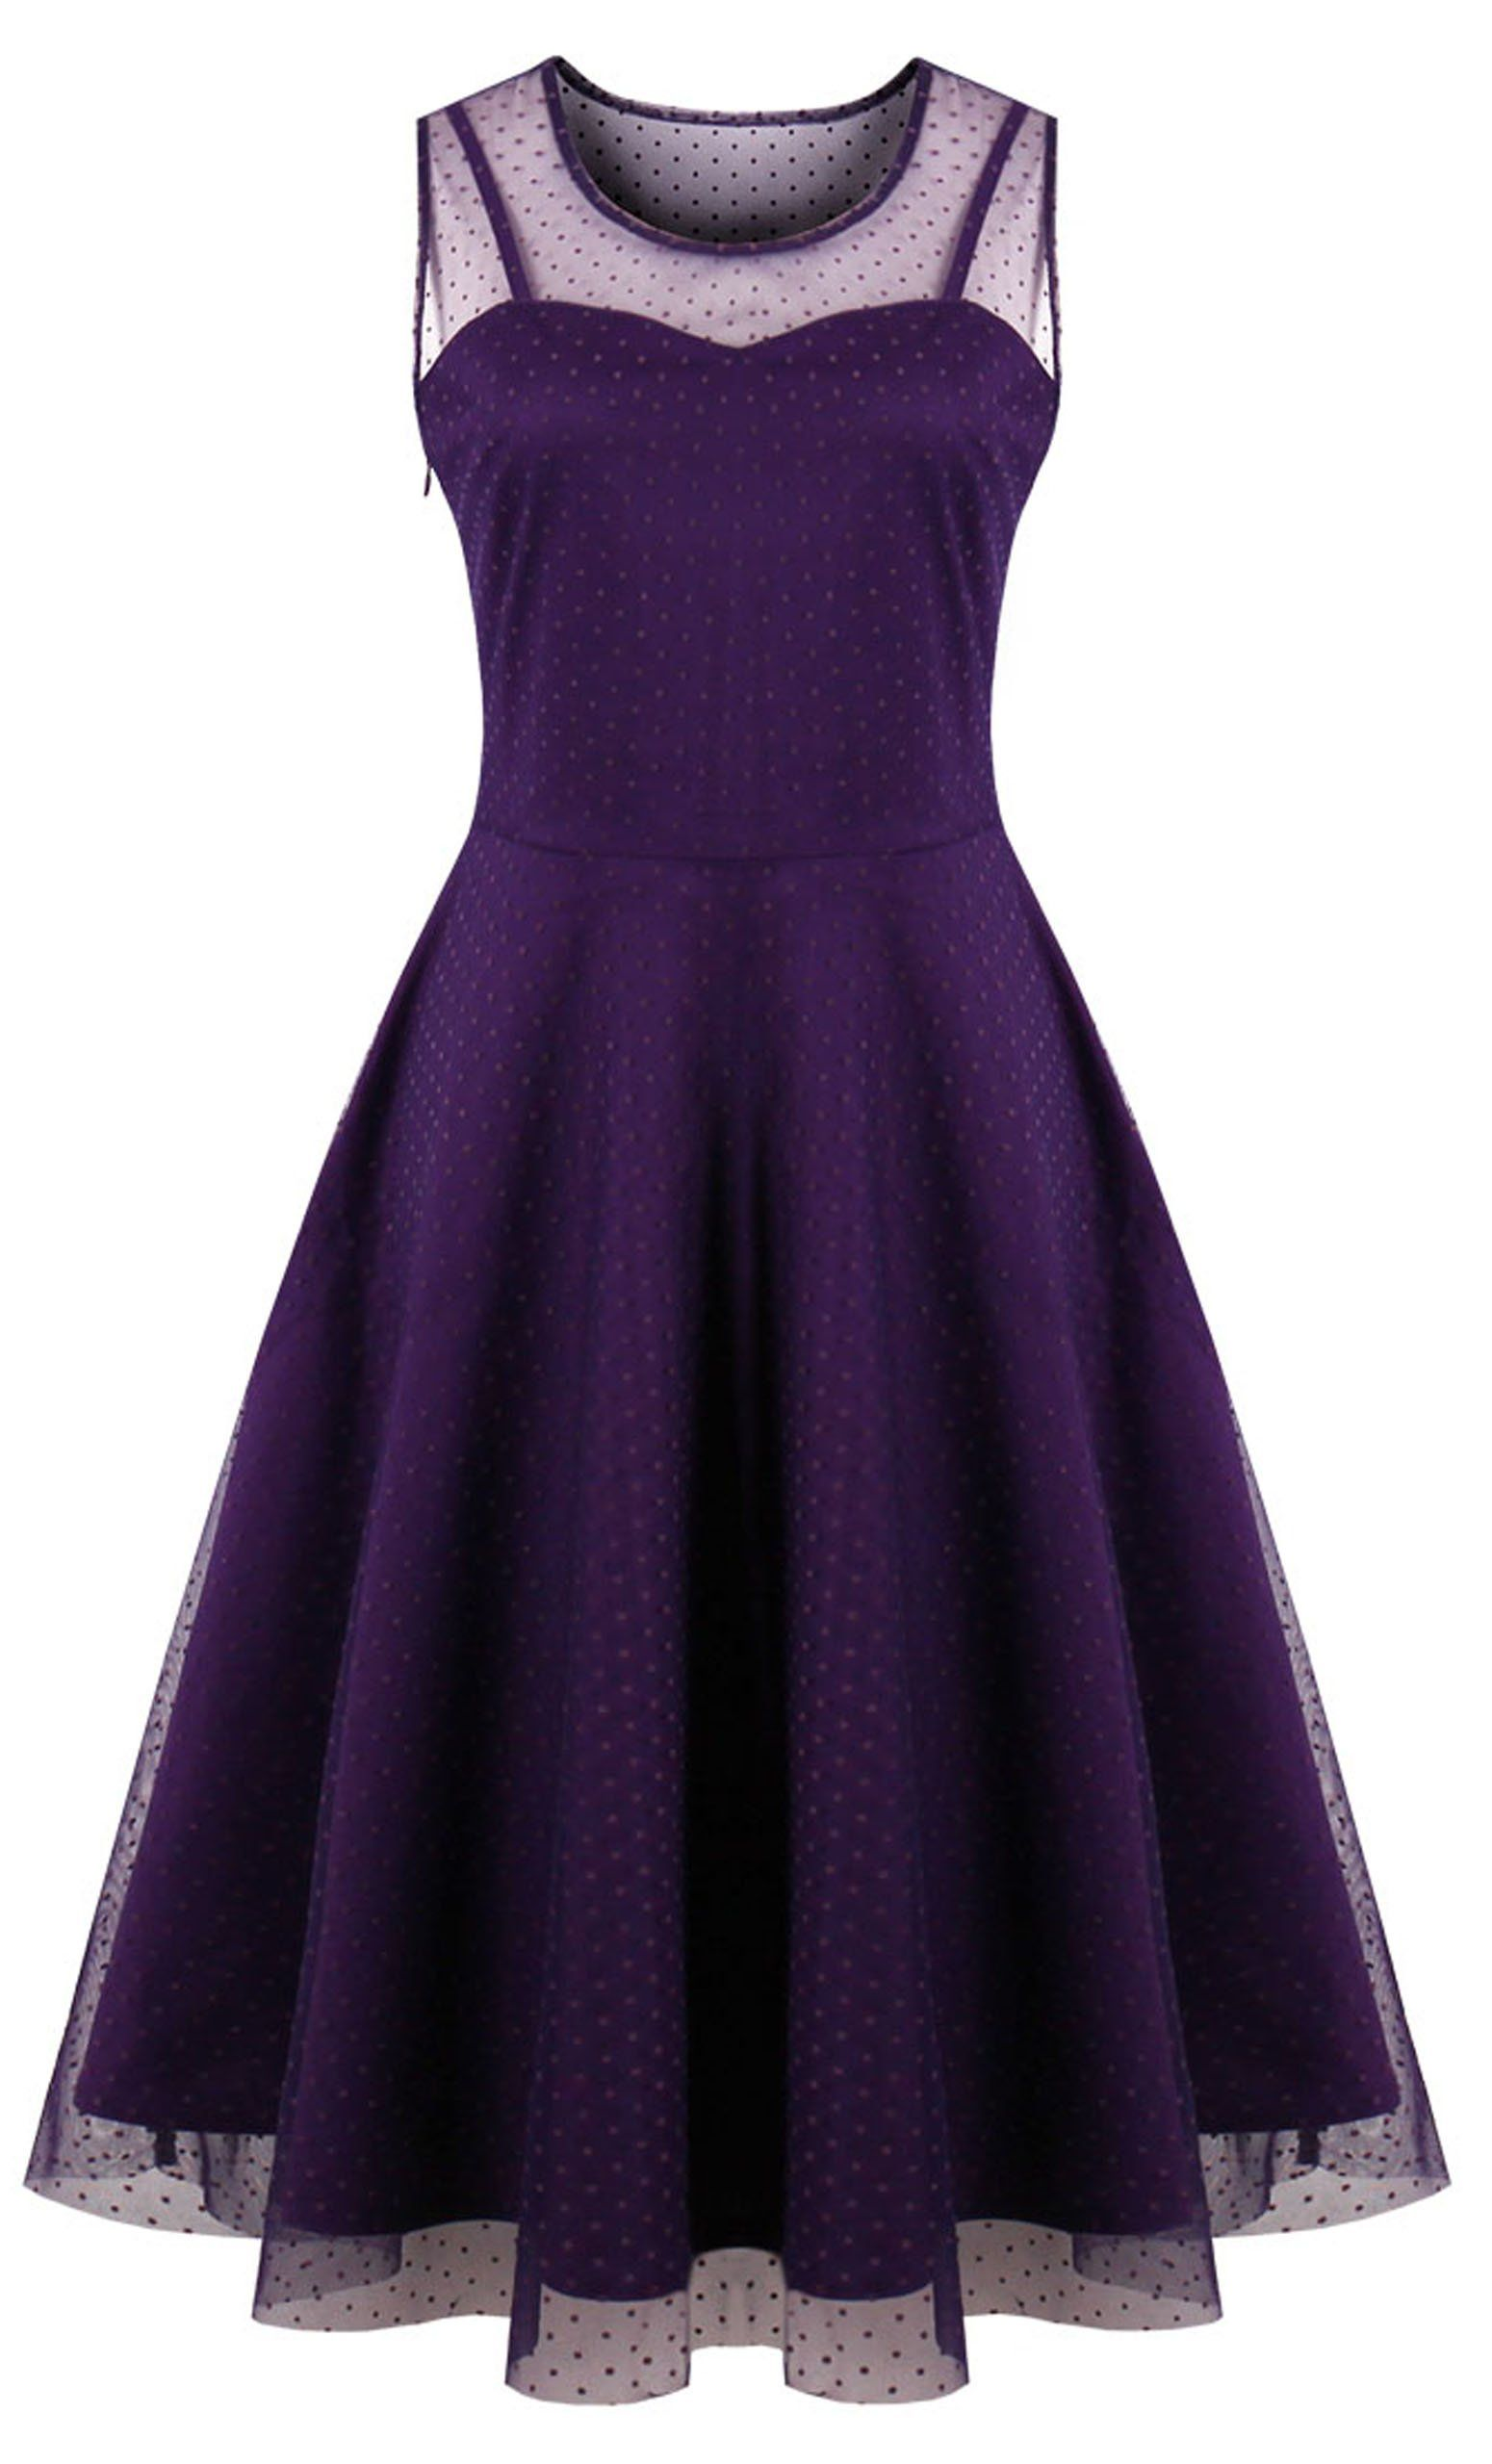 5040327654 KILOLONE Womens 50s Plus Size Dresses Christmas Party Vintage Retro  Bridesmaid Evening Lace Sleeveless Cocktail Dress Purple Medium   You could  find out ...